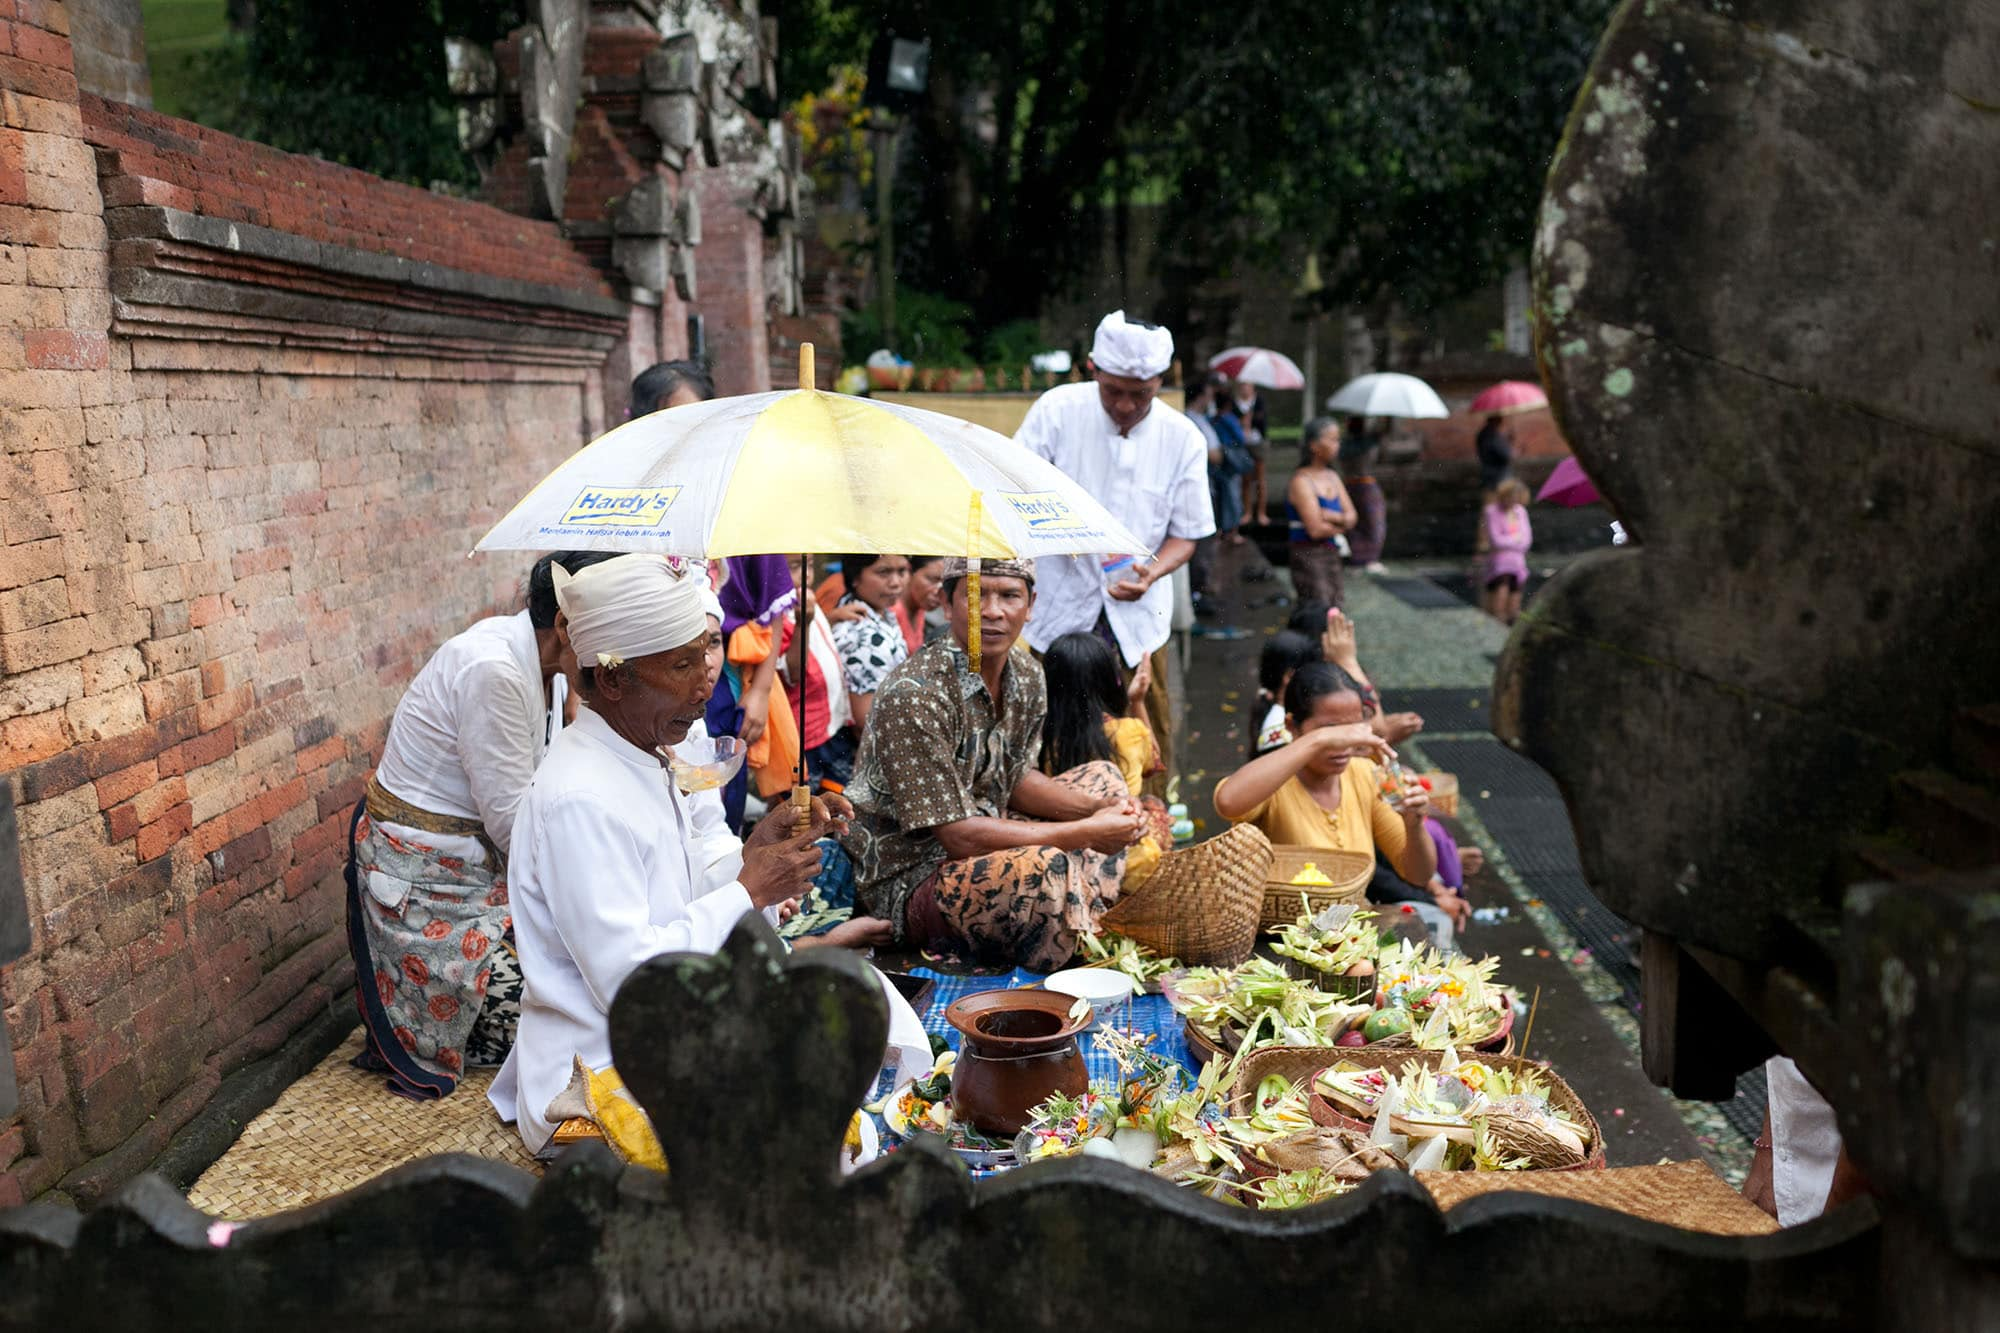 Tirta Empul Holy Springs in Bali, Indonesia